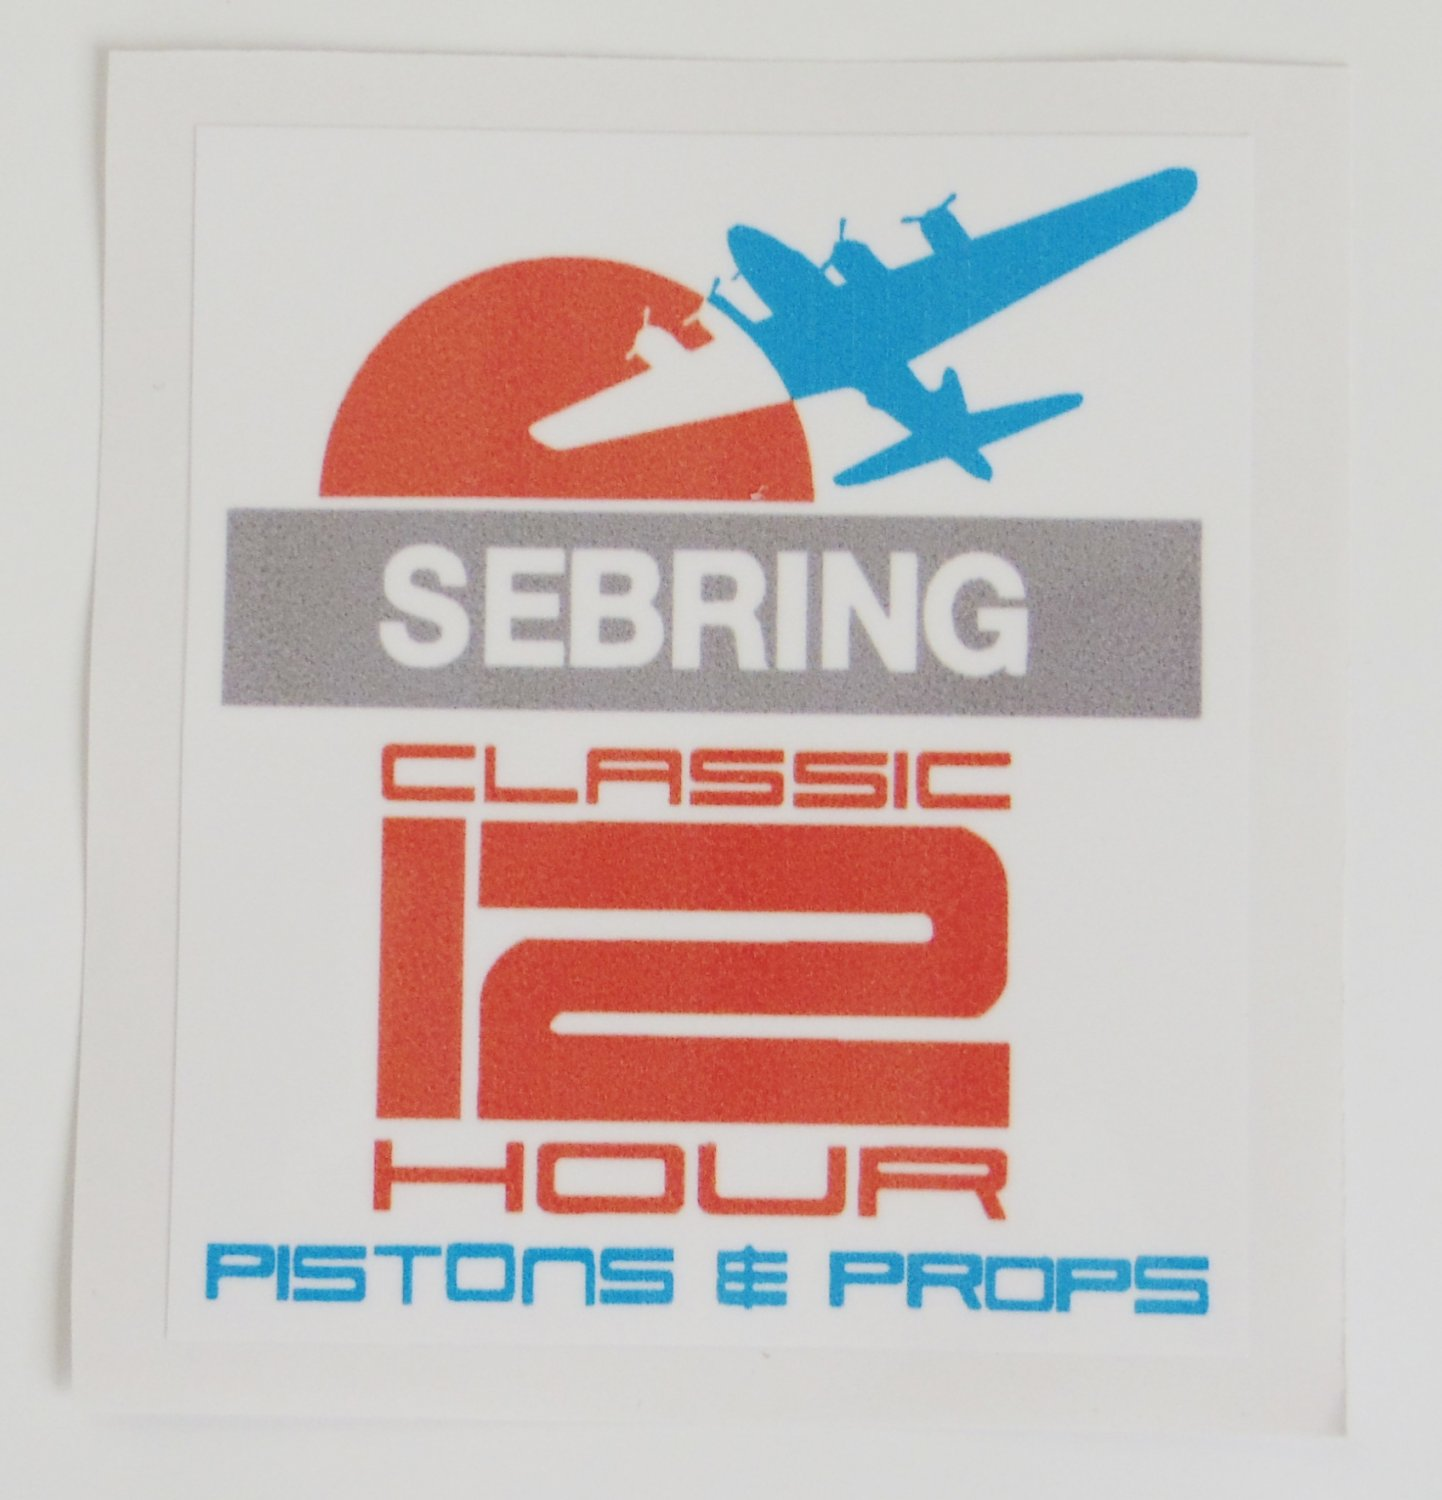 sebring classic 12 hour test day tech sticker hsr dec 1 4. Black Bedroom Furniture Sets. Home Design Ideas